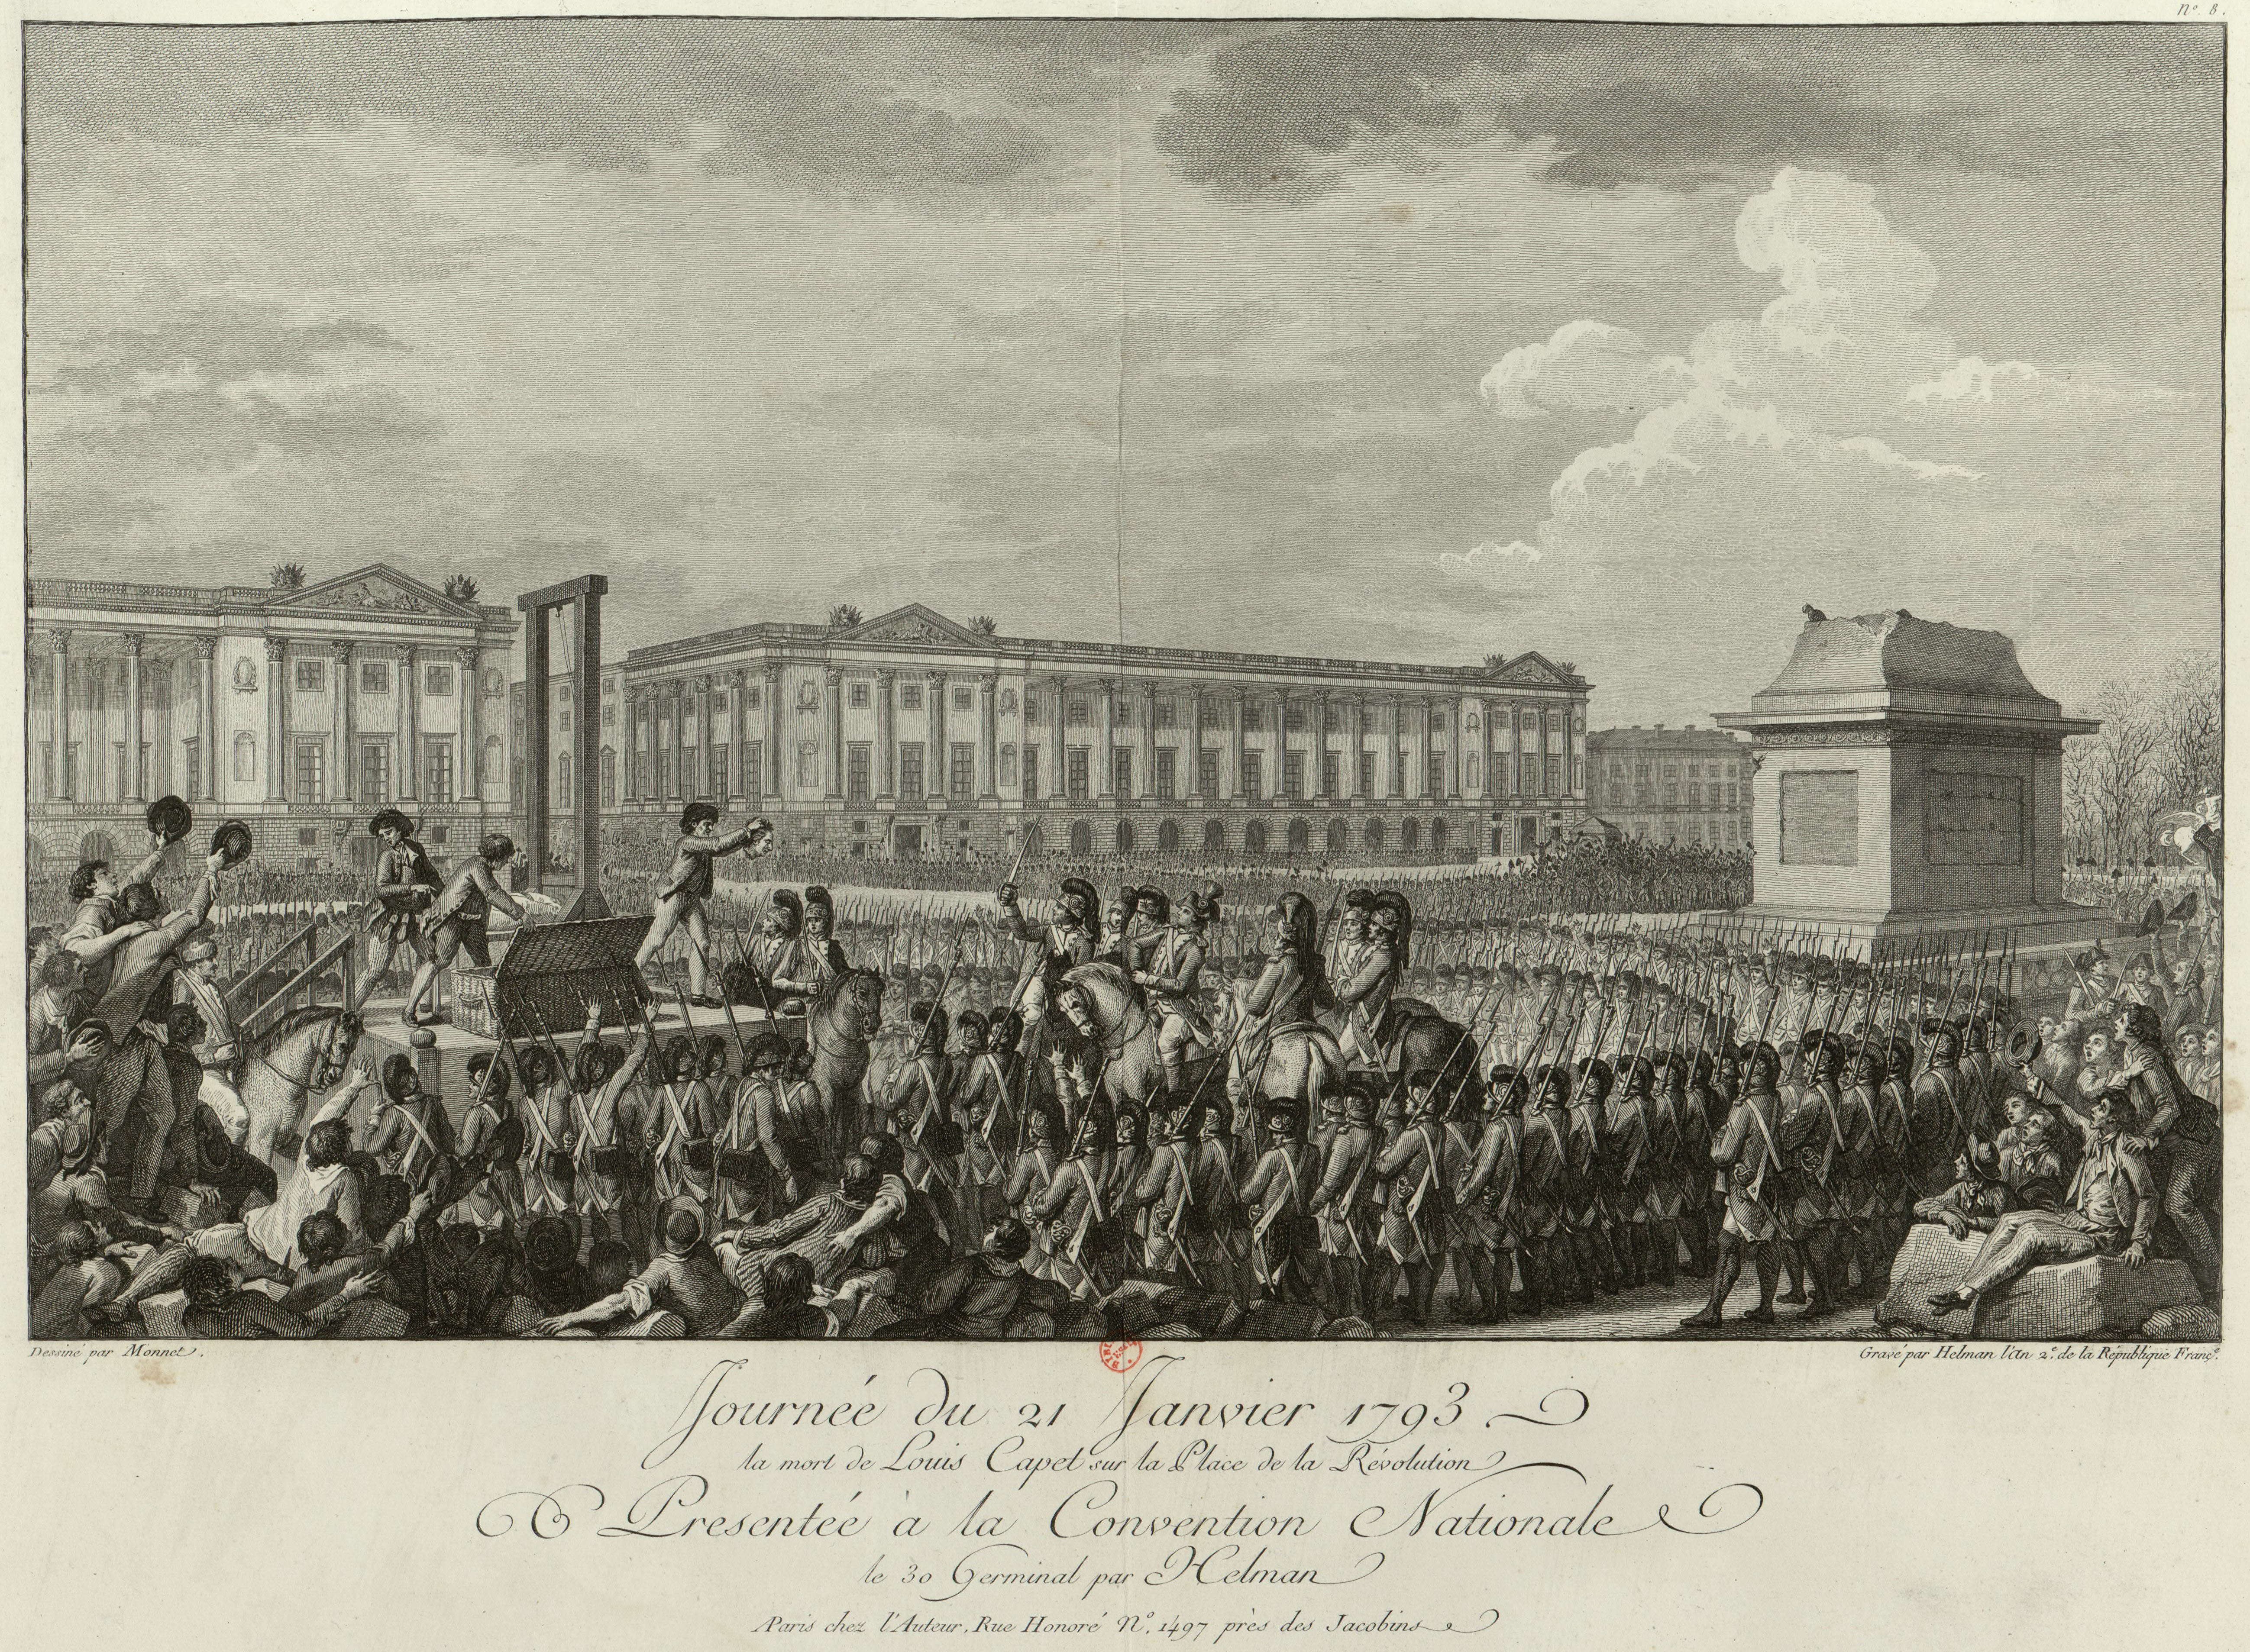 http://upload.wikimedia.org/wikipedia/commons/9/90/LouisXVIExecutionBig.jpg